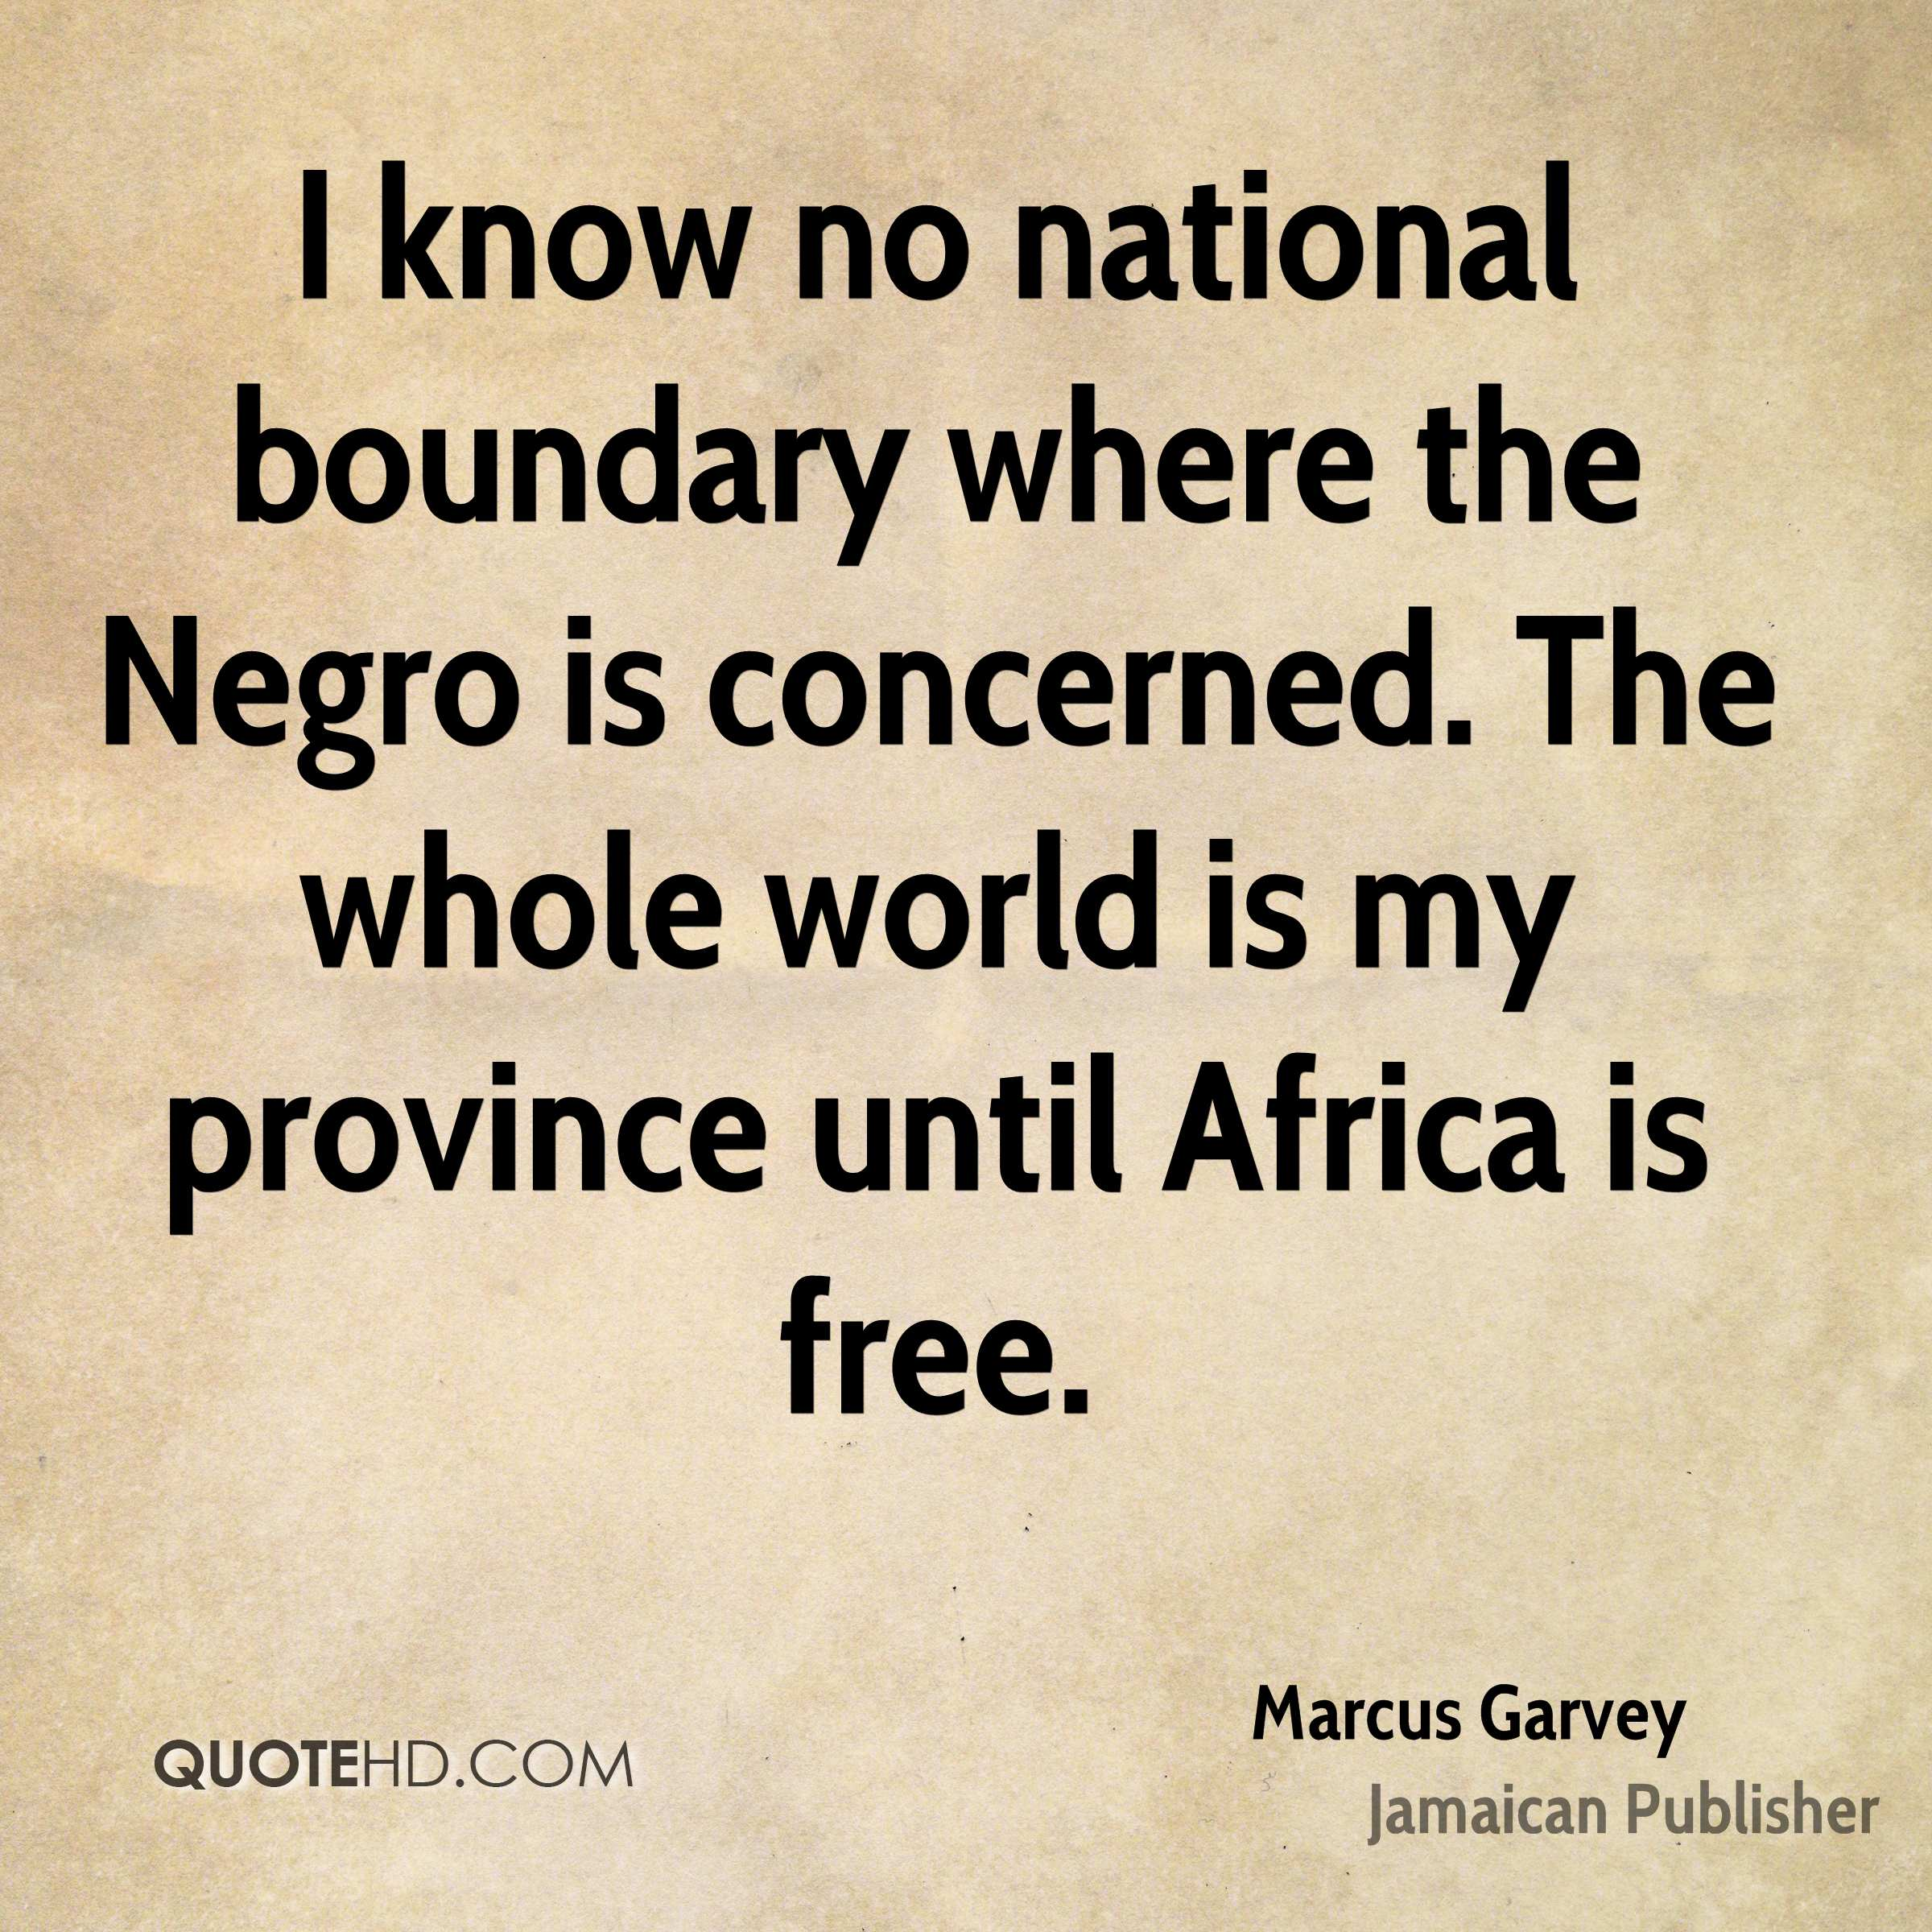 I know no national boundary where the Negro is concerned. The whole world is my province until Africa is free.